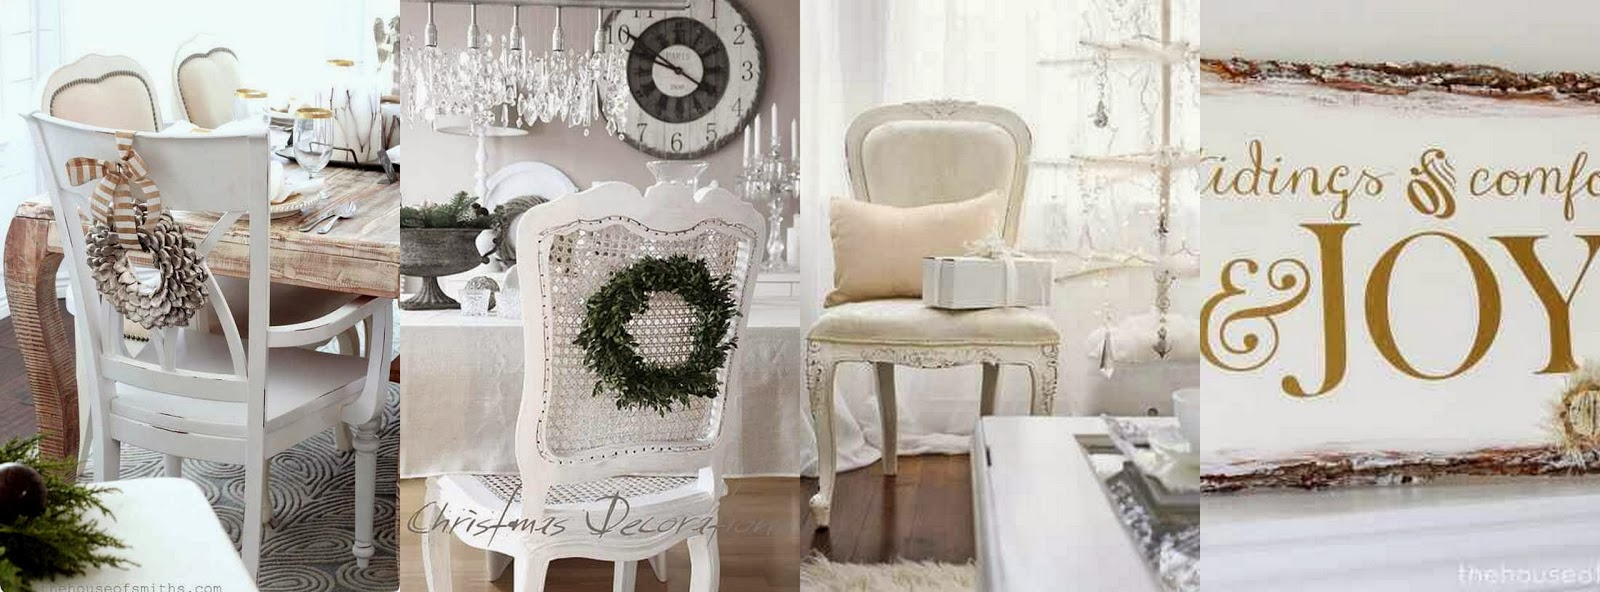 The french flea white christmas decorating ideas pinterest board Home decor pinterest boards to follow